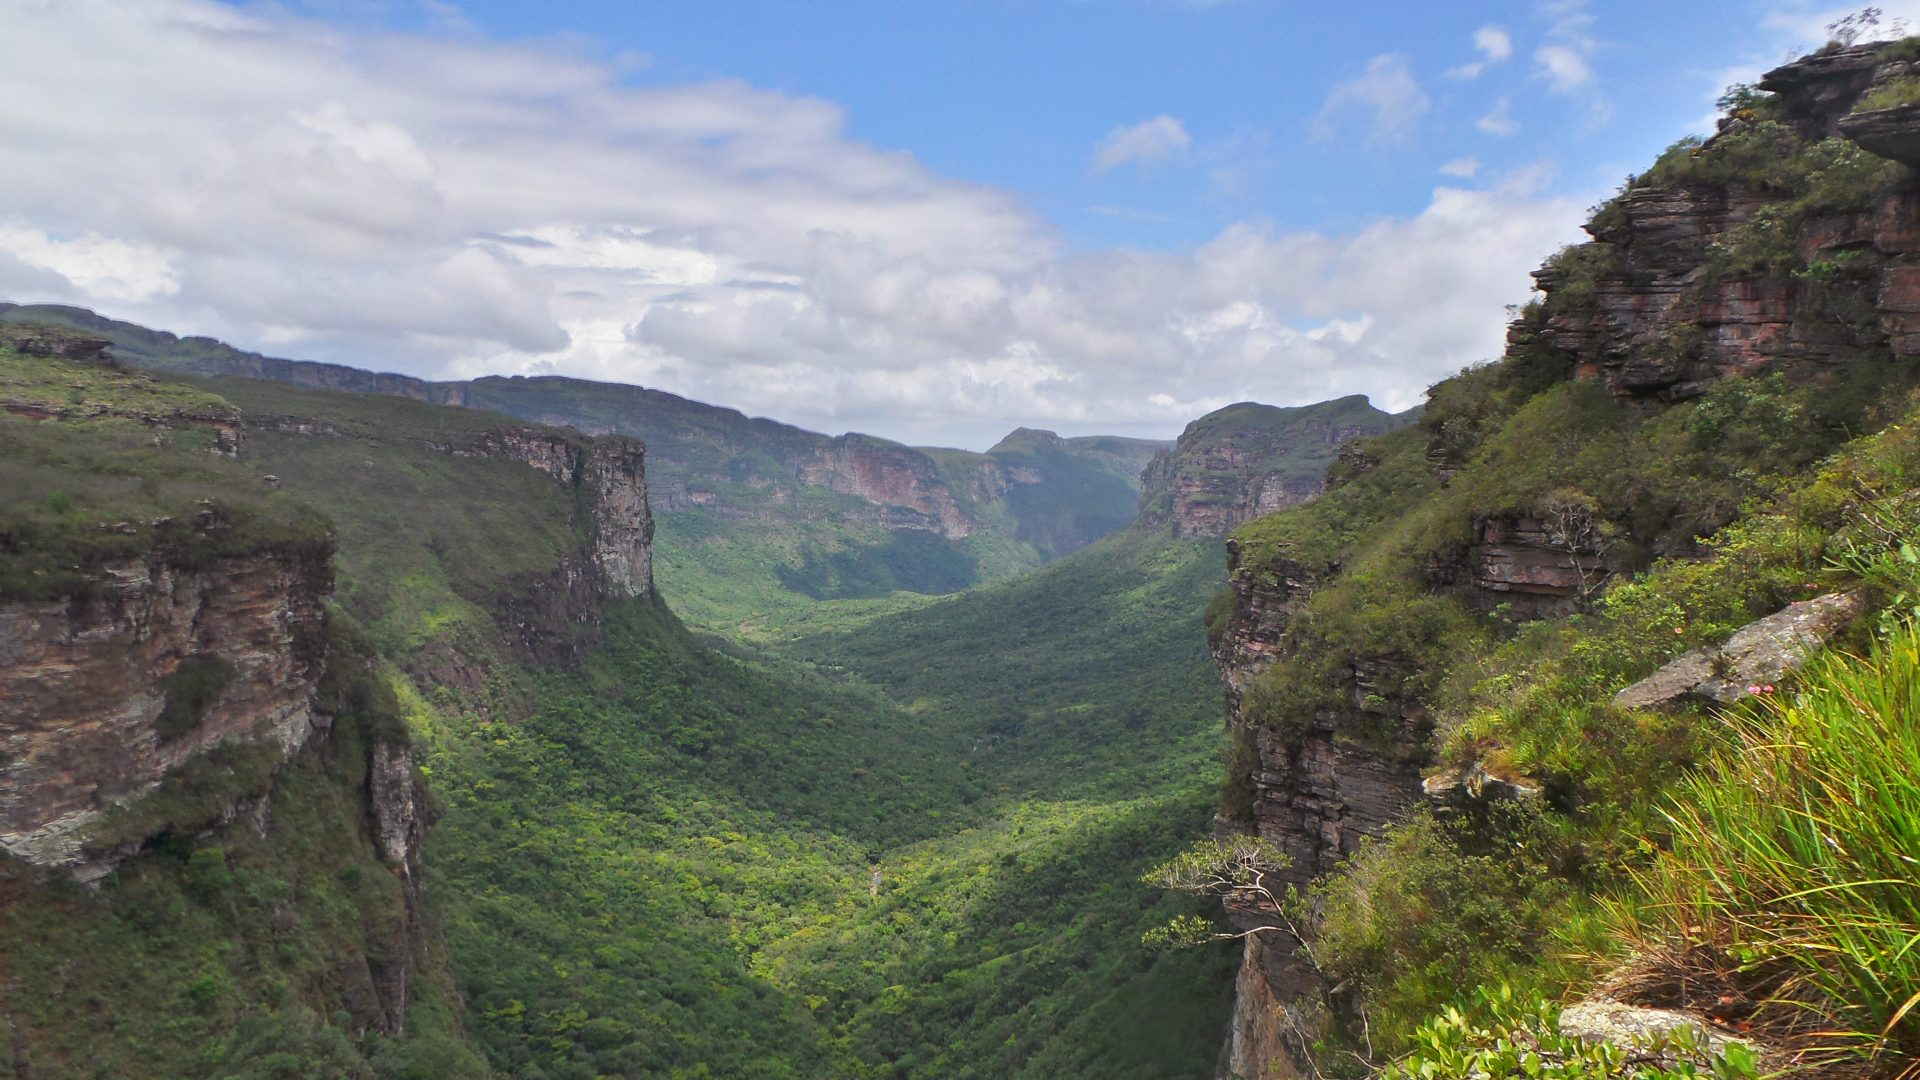 Wide view of a valley in the mountains